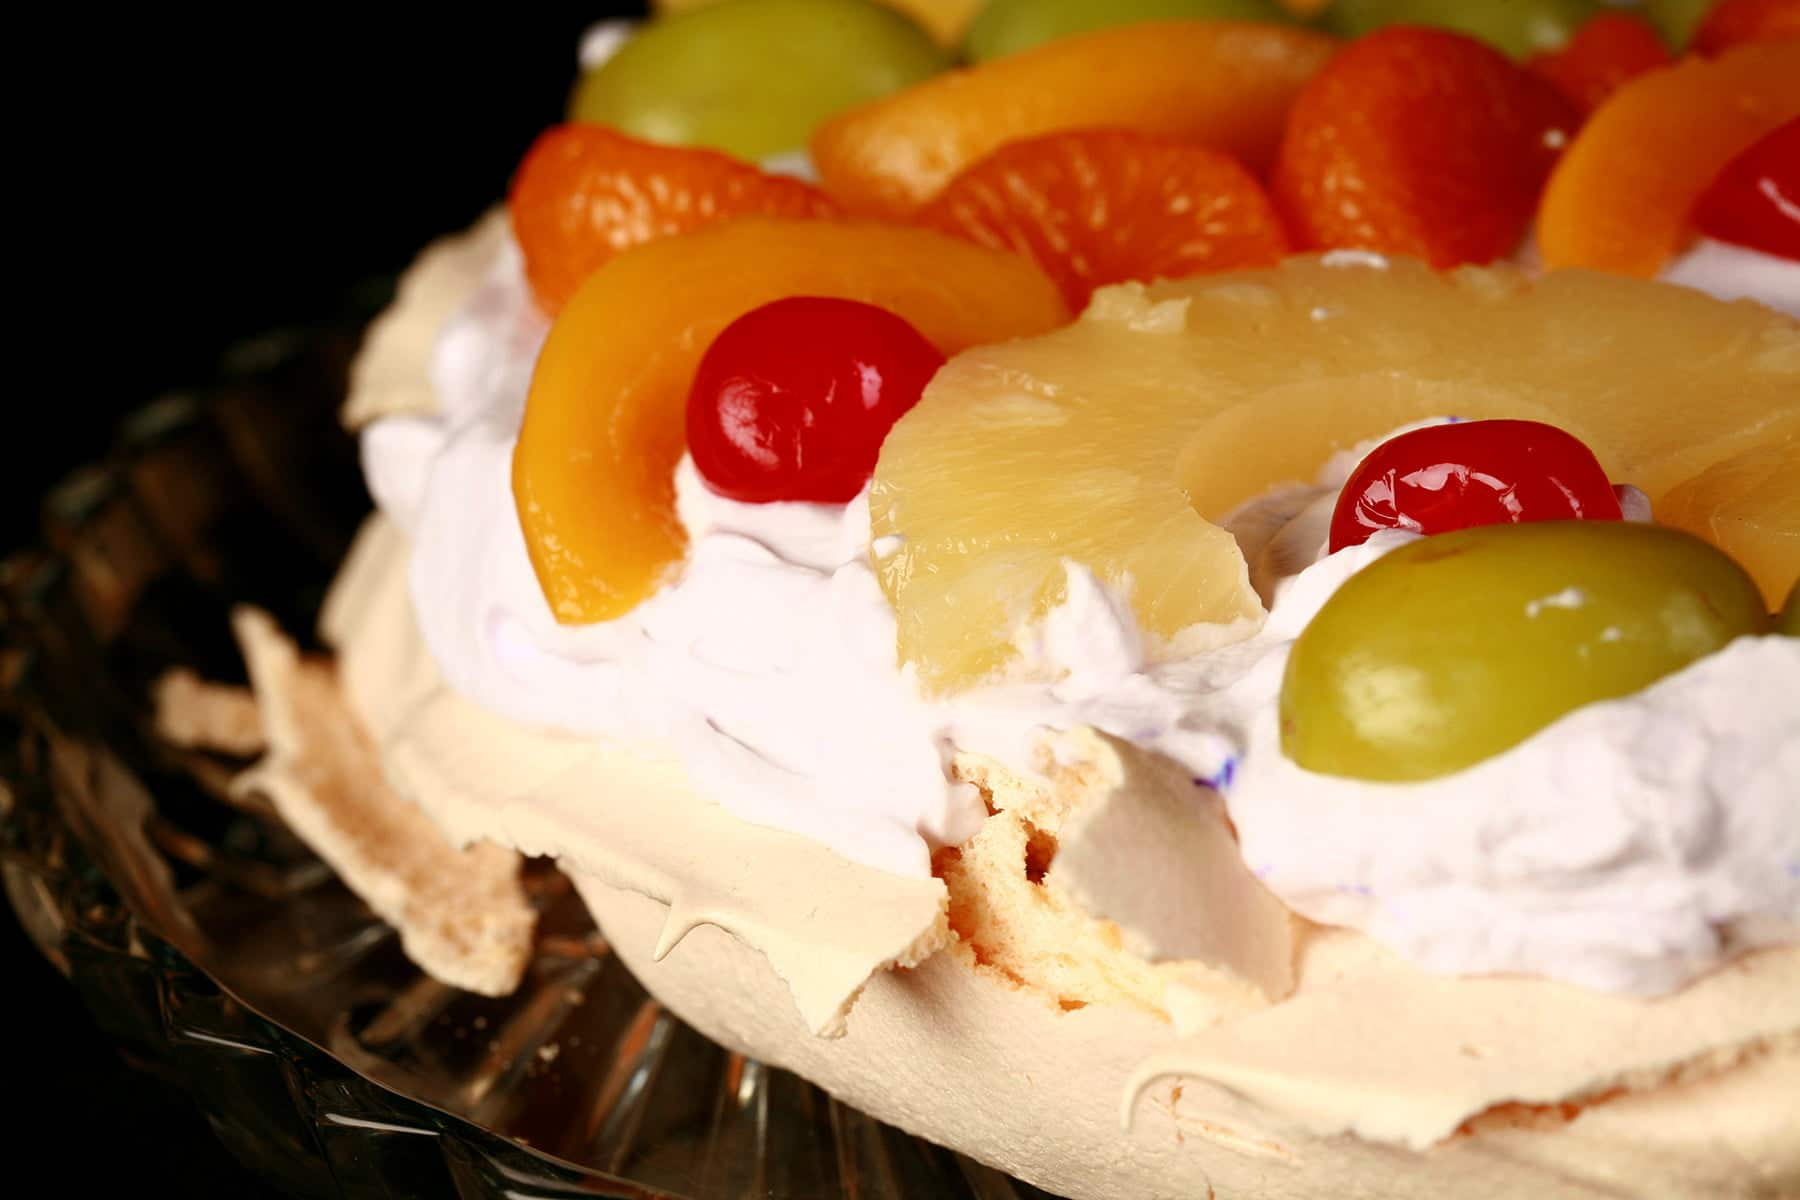 A close up view of an Easter pavlova.